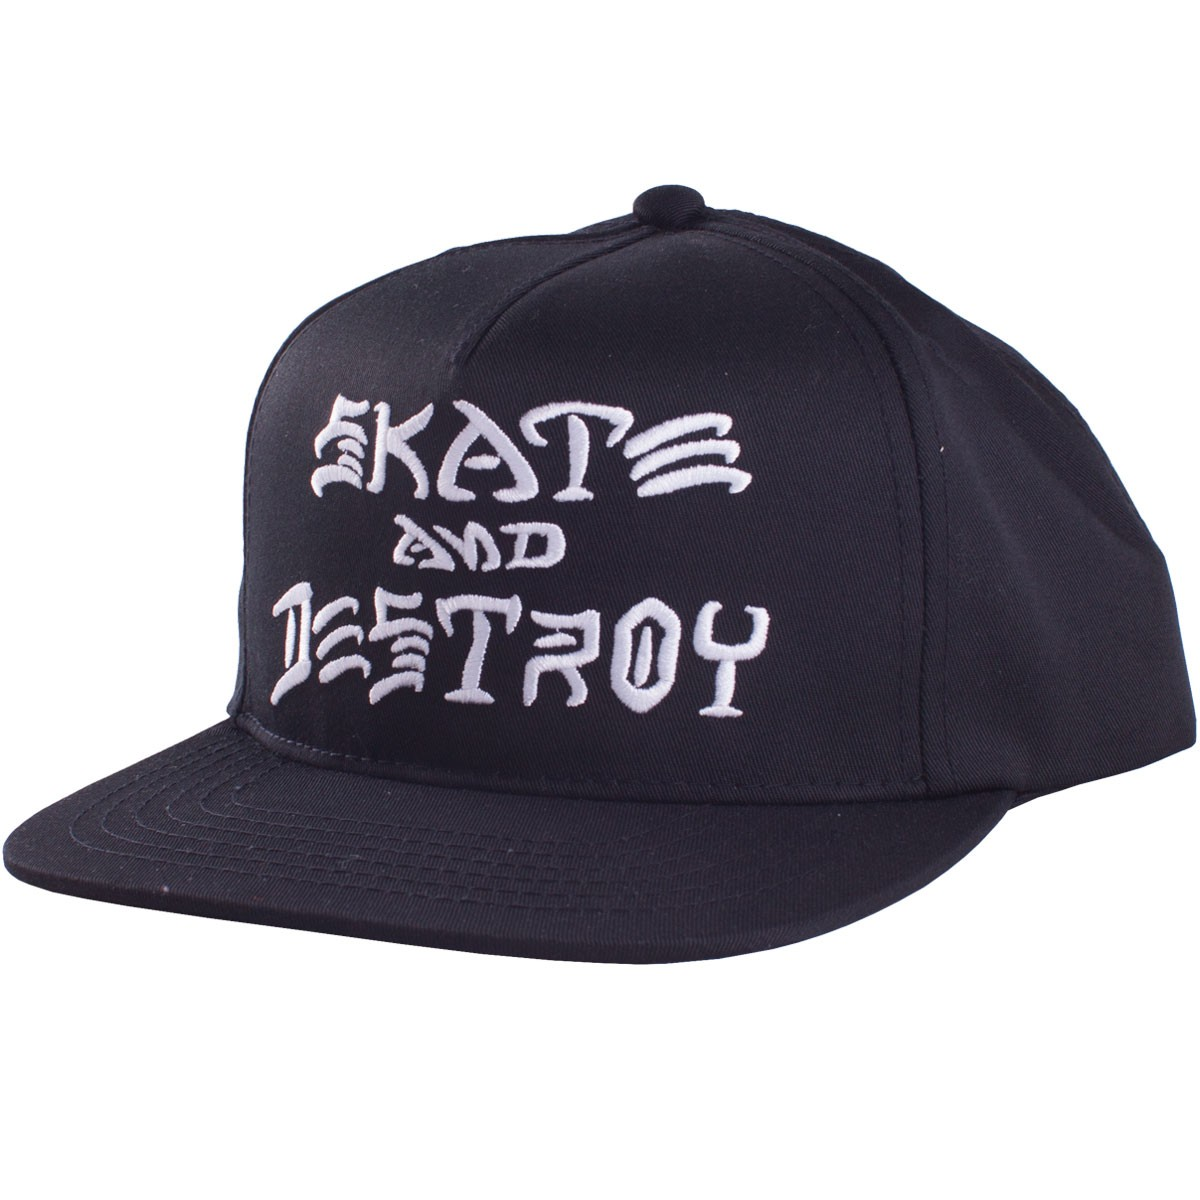 Thrasher Skate and Destroy Snapback - Black